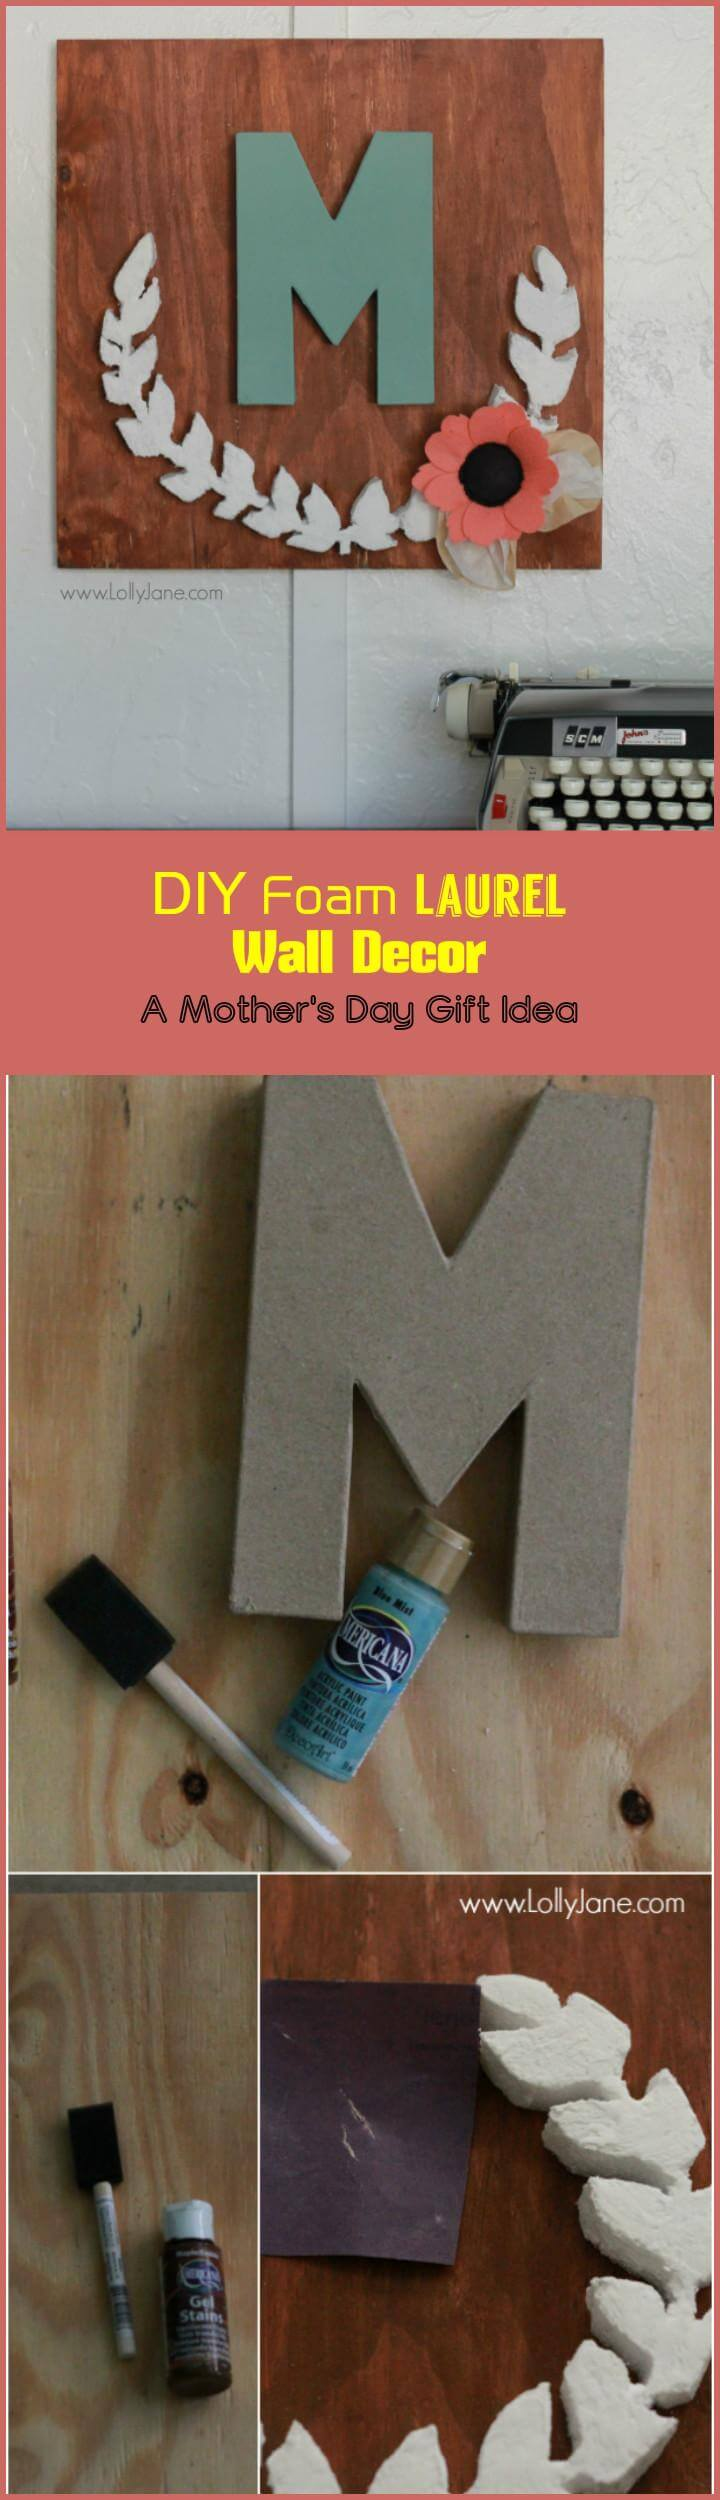 300 DIY Mothers Day Gifts You Can Make For Your Mom